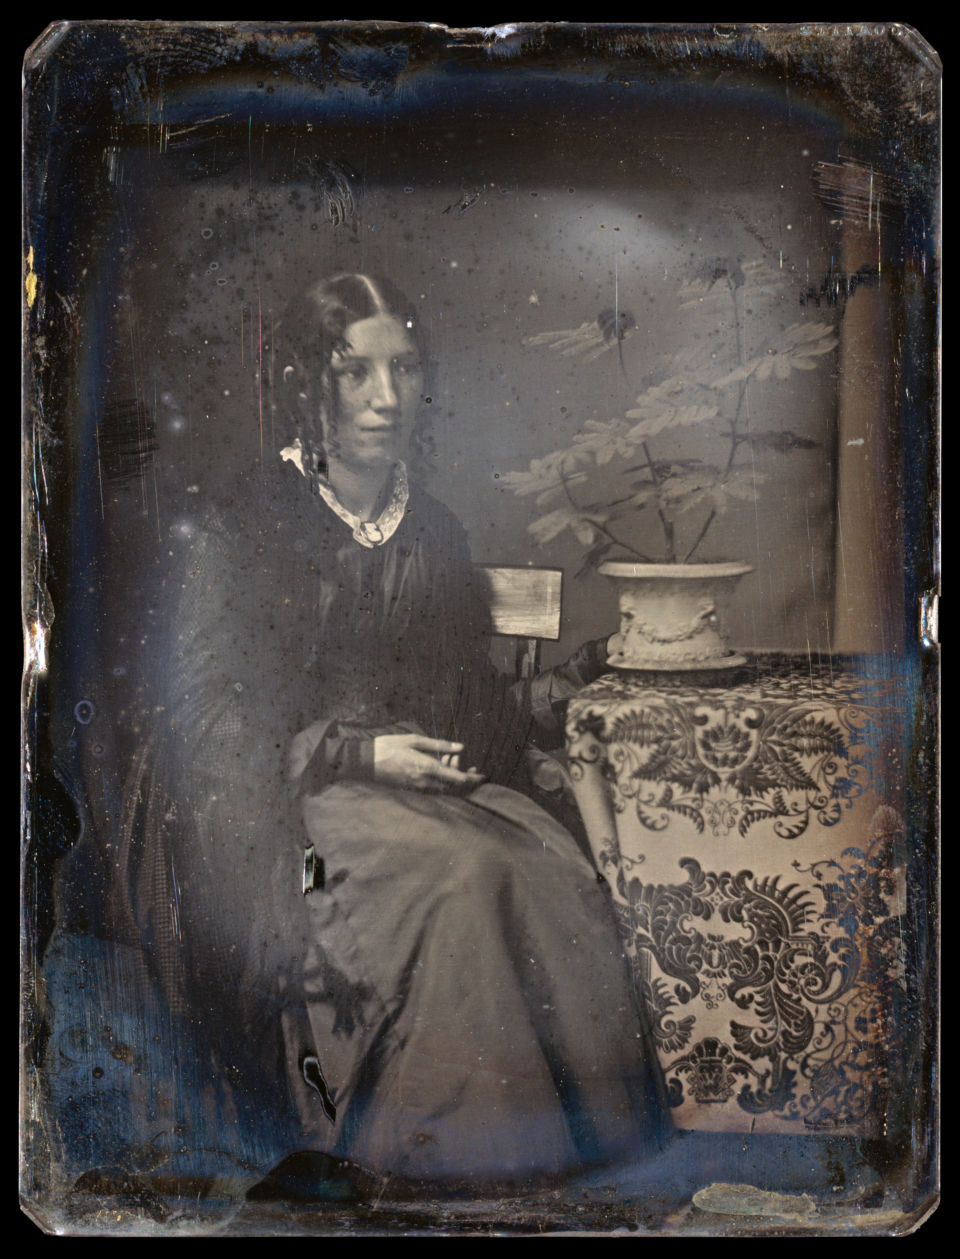 the role of women in uncle toms cabin a book by harriet beecher stowe - biographical summary uncle toms cabin, written by harriet  of turmoil for women and the role they  whether harriet beecher stowe's book, uncle.